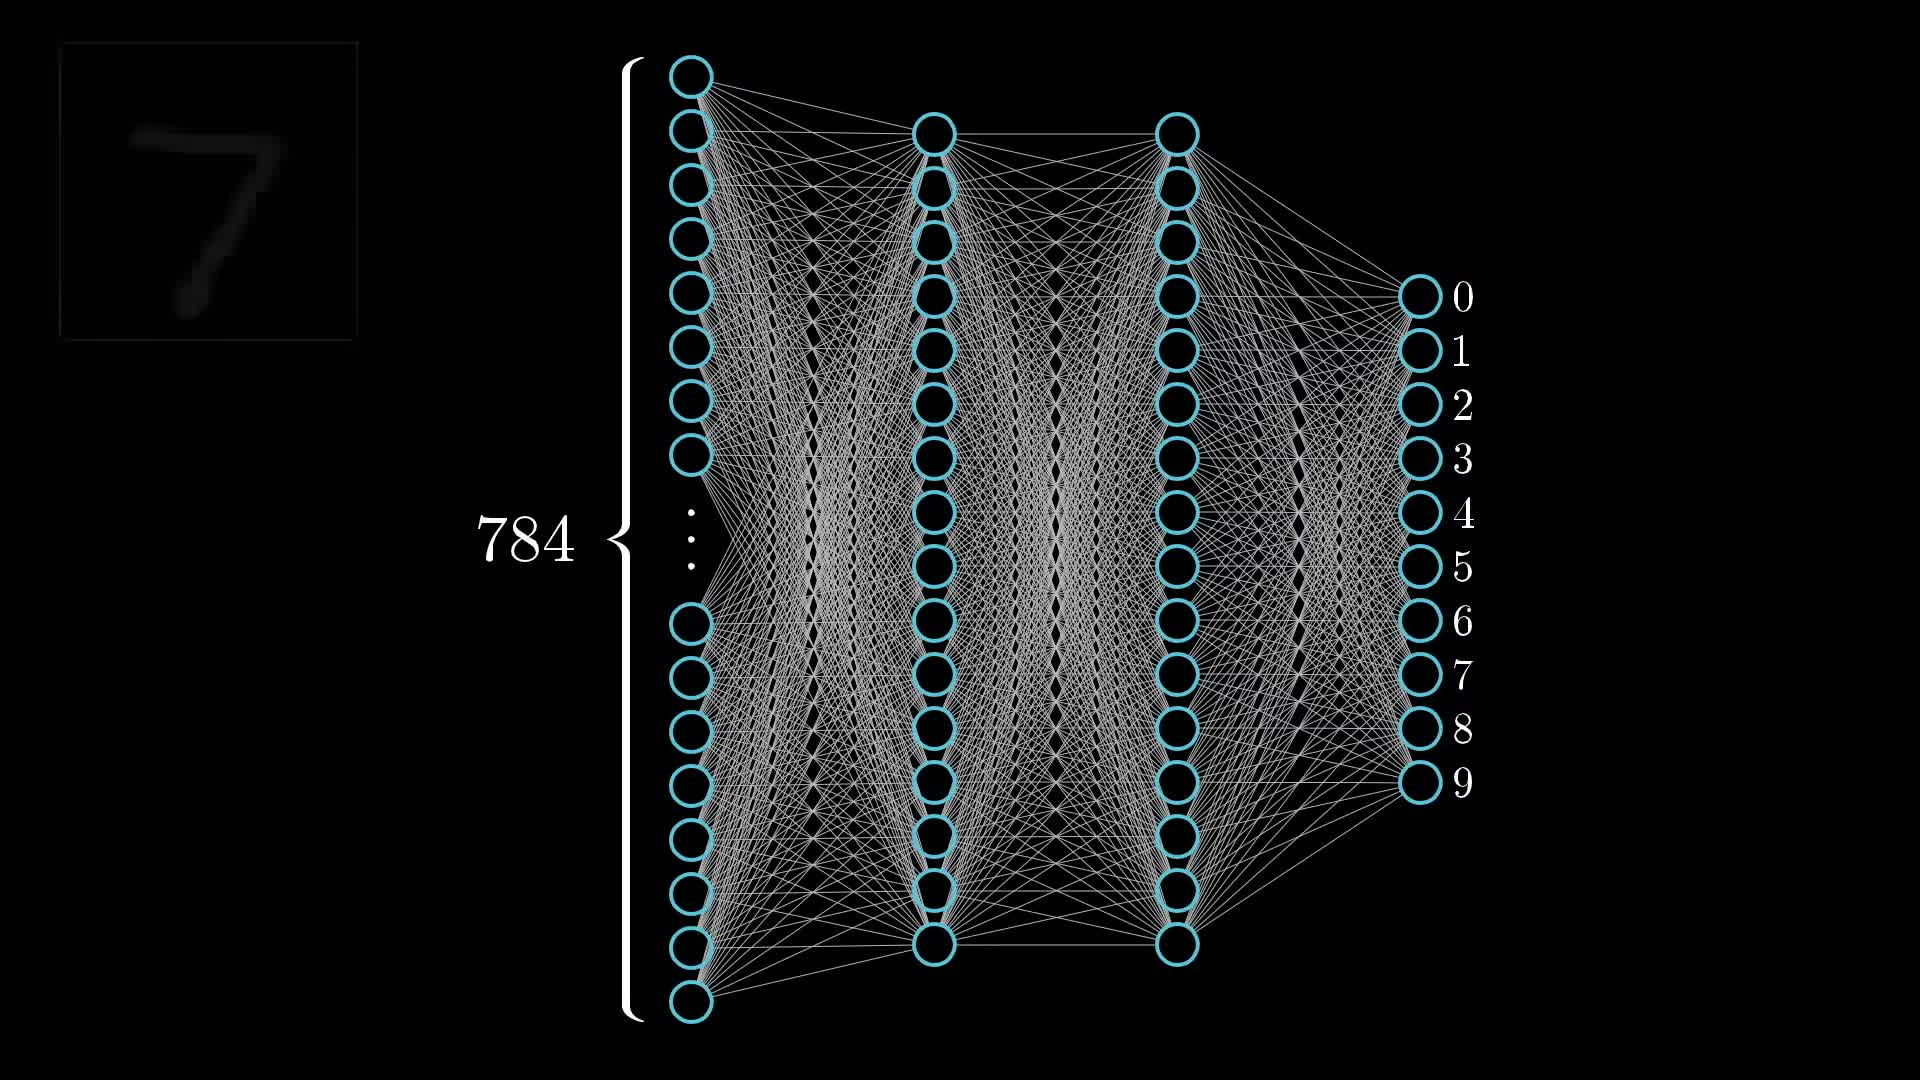 3 blue 1 brown, 3Blue1Brown, 3b1b, Education, Mathematics, deep learning, machines learning, neural networks, three blue one brown, Neural Network GIFs